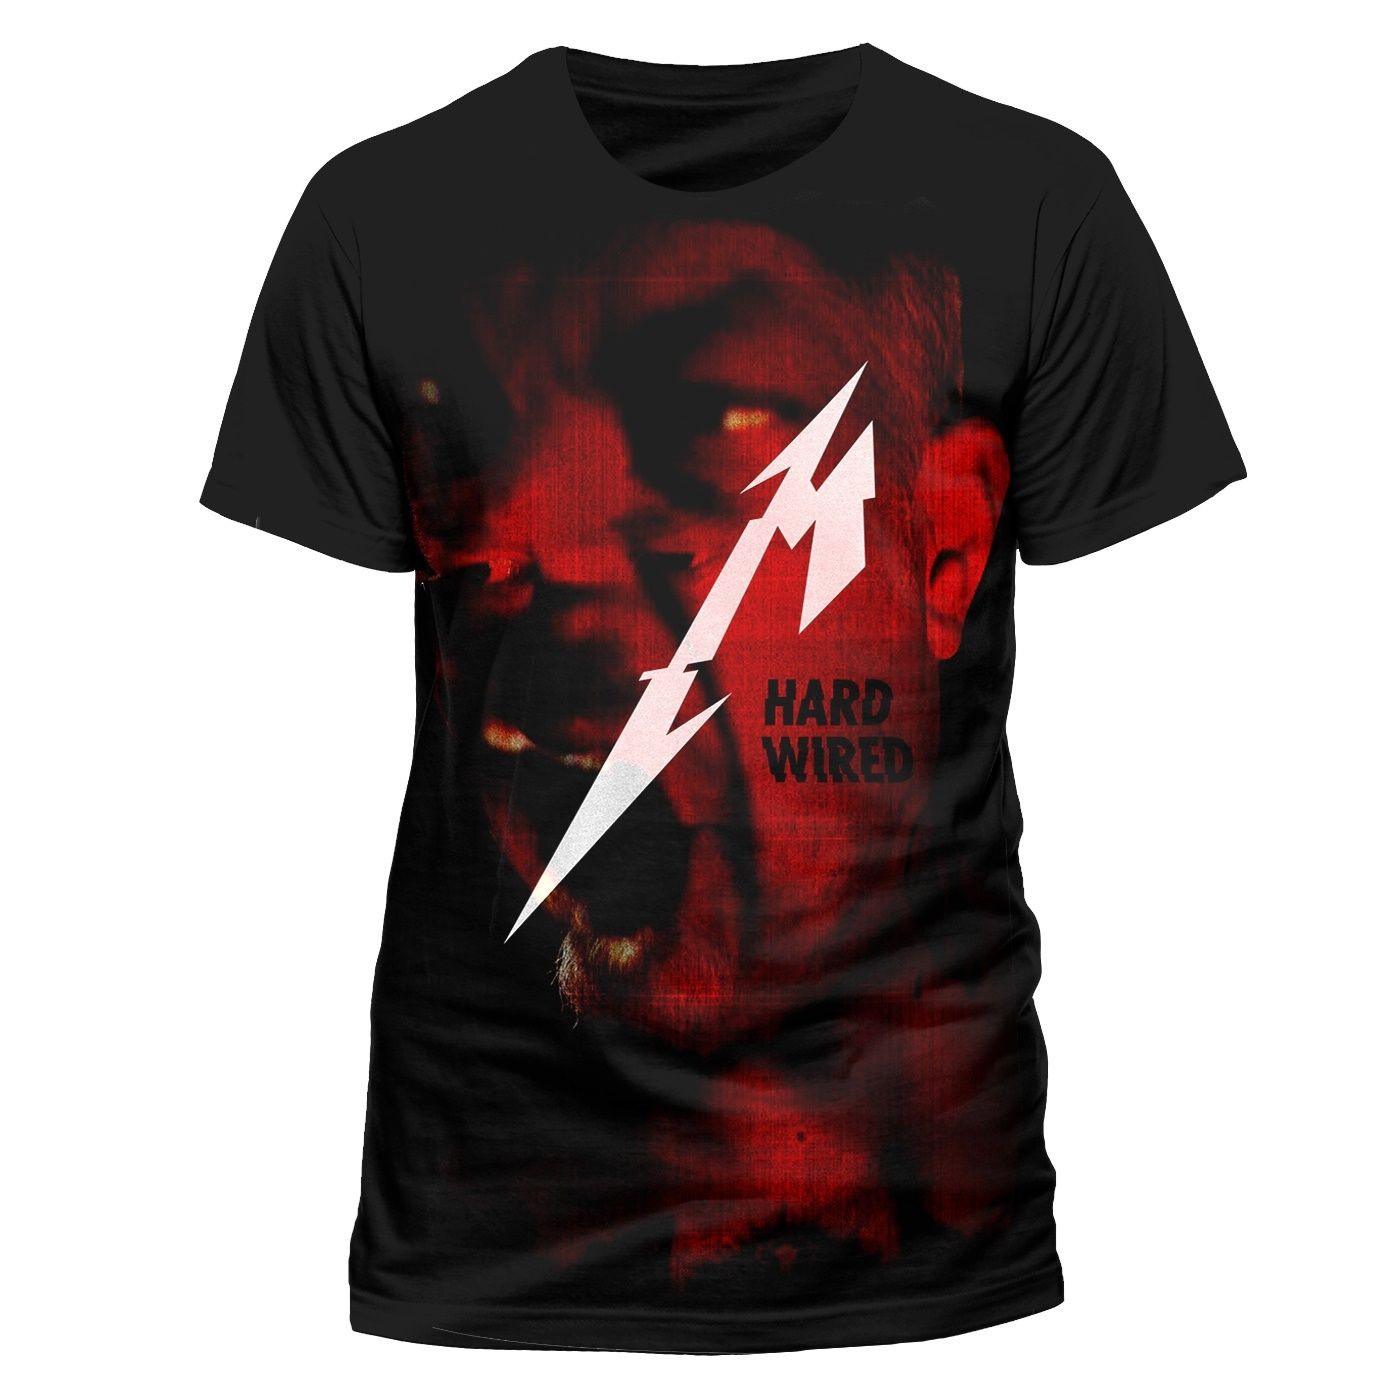 Official-T-Shirt-METALLICA-Hardwired-To-Self-Destruct-JUMBO-Cover-All-Sizes thumbnail 3